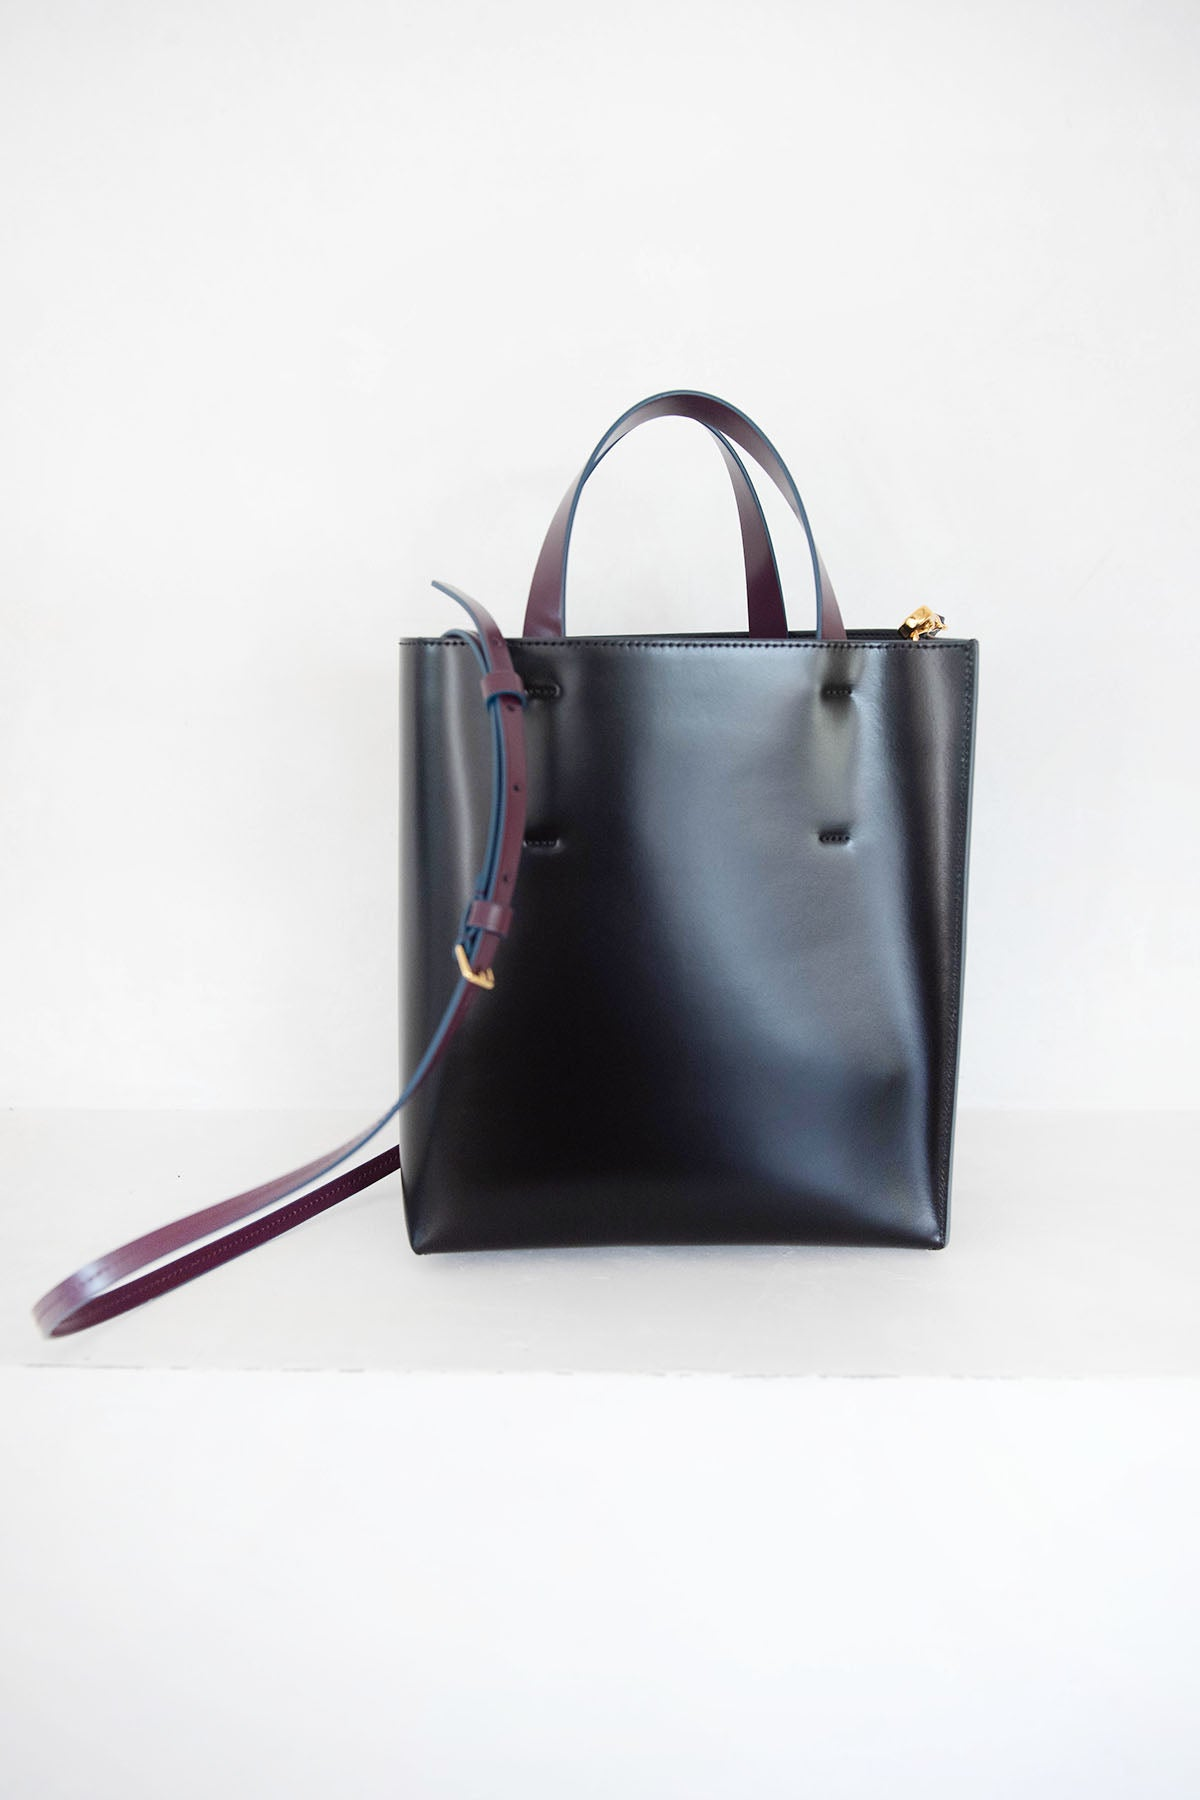 MARNI - museo small bag, black and burgandy